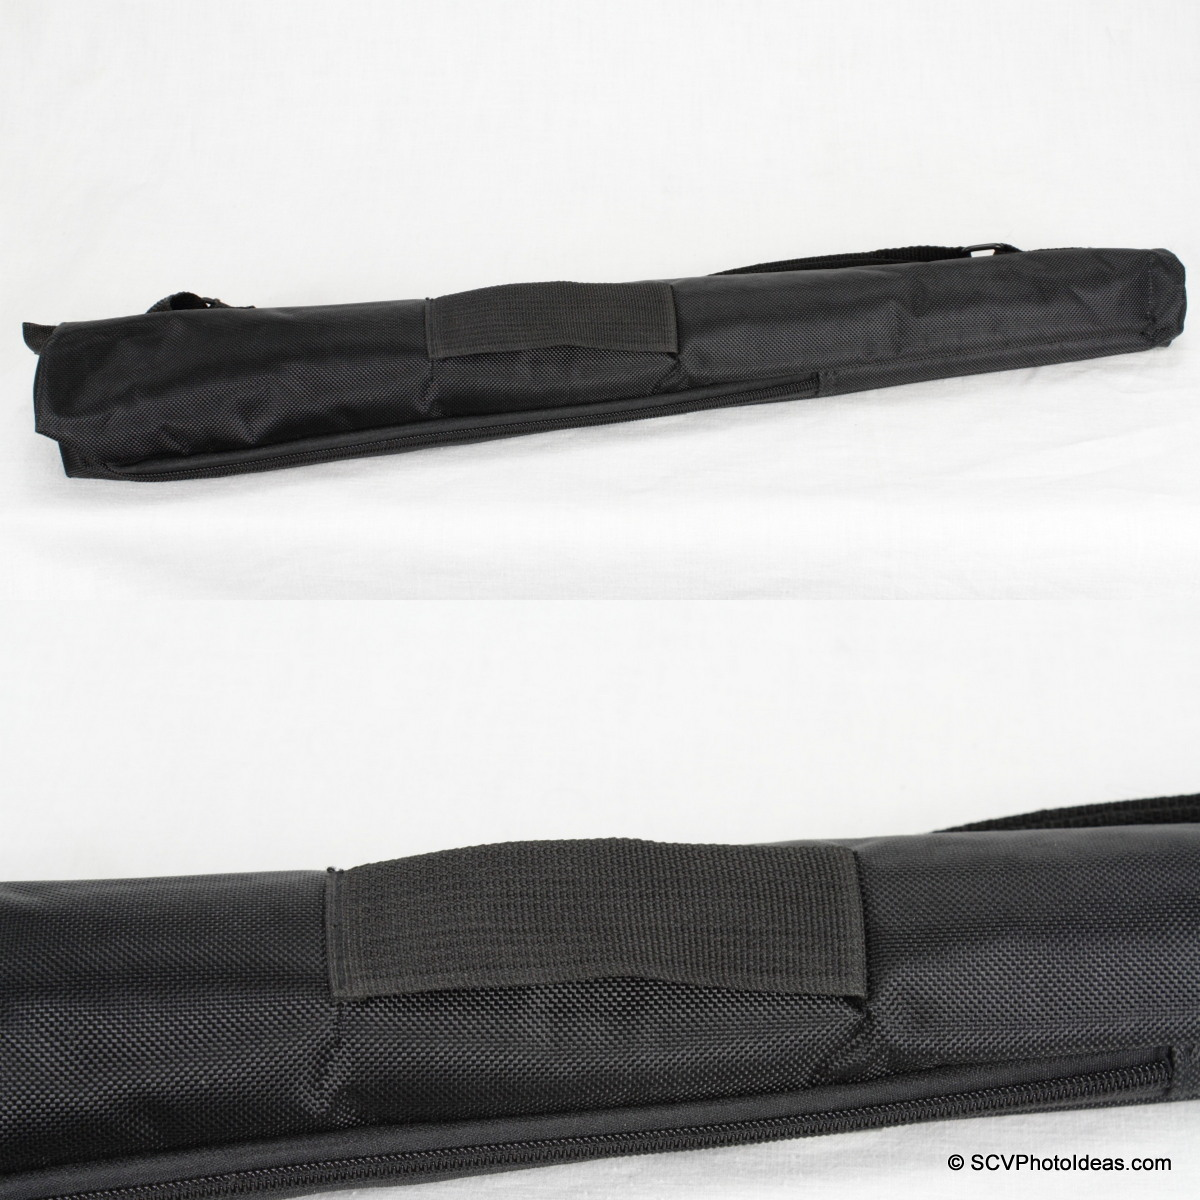 Triopo GL-70 CF Monopod - carrying case handle